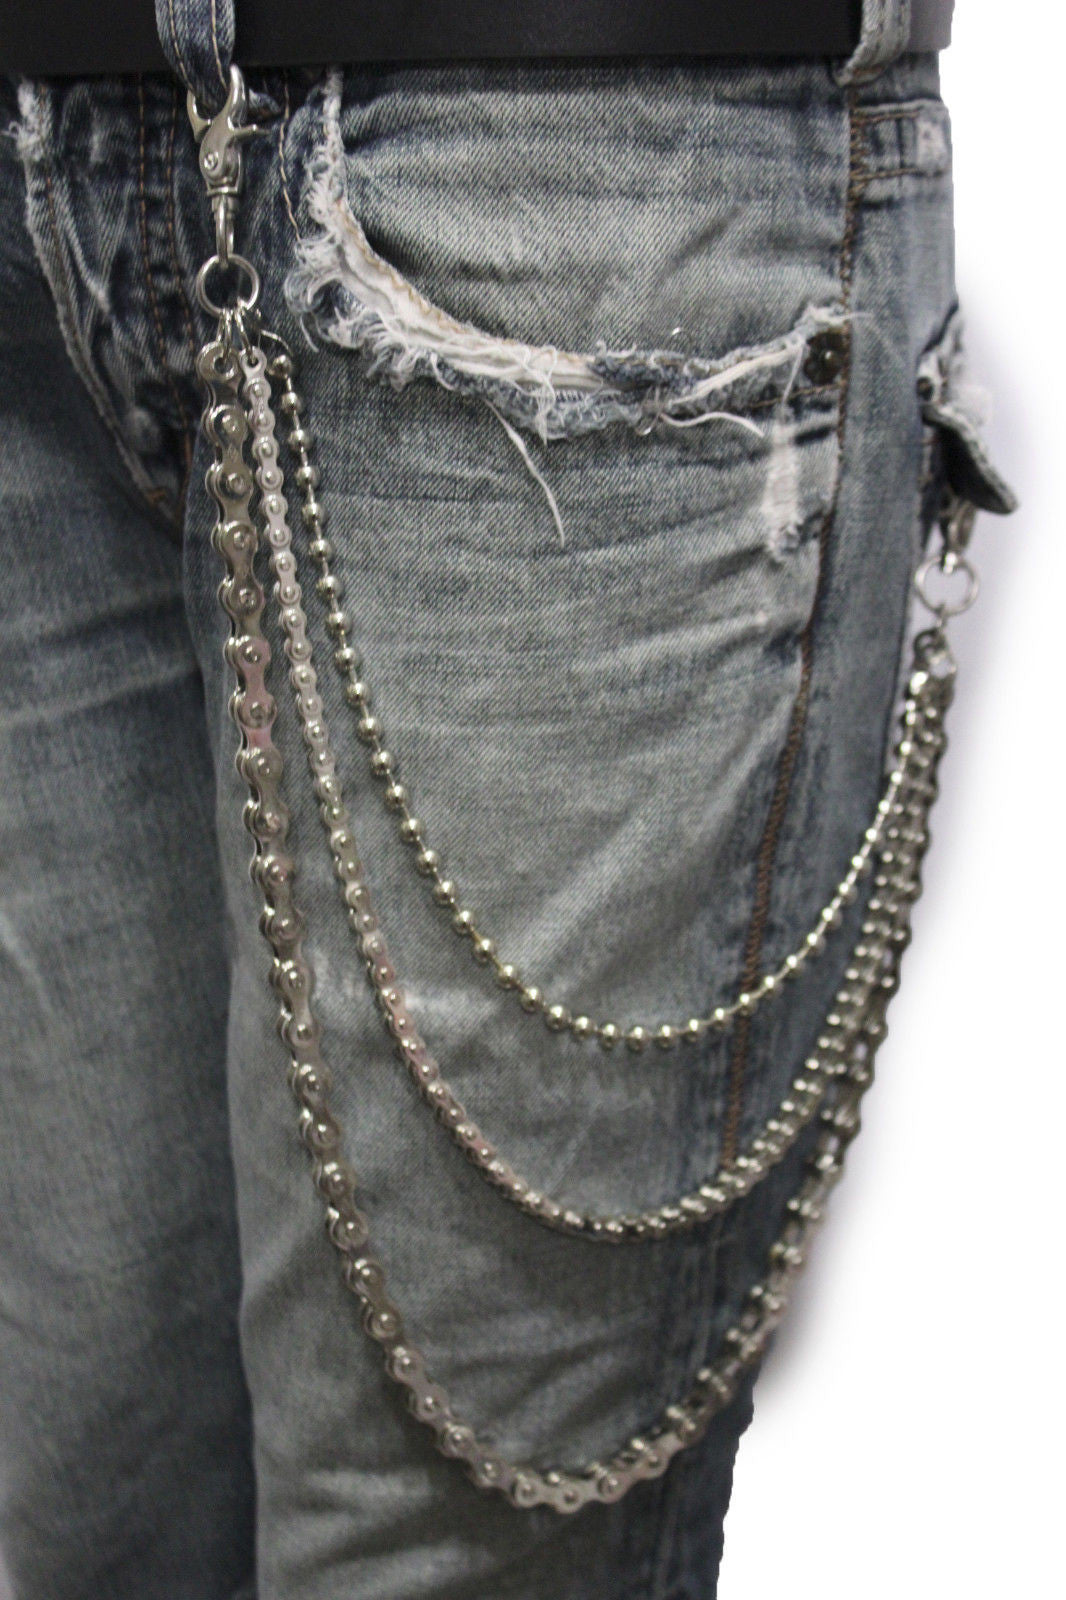 Men 3 Strand Silver Metal Wallet Chains Horns Spikes KeyChain Biker Jeans Rocker